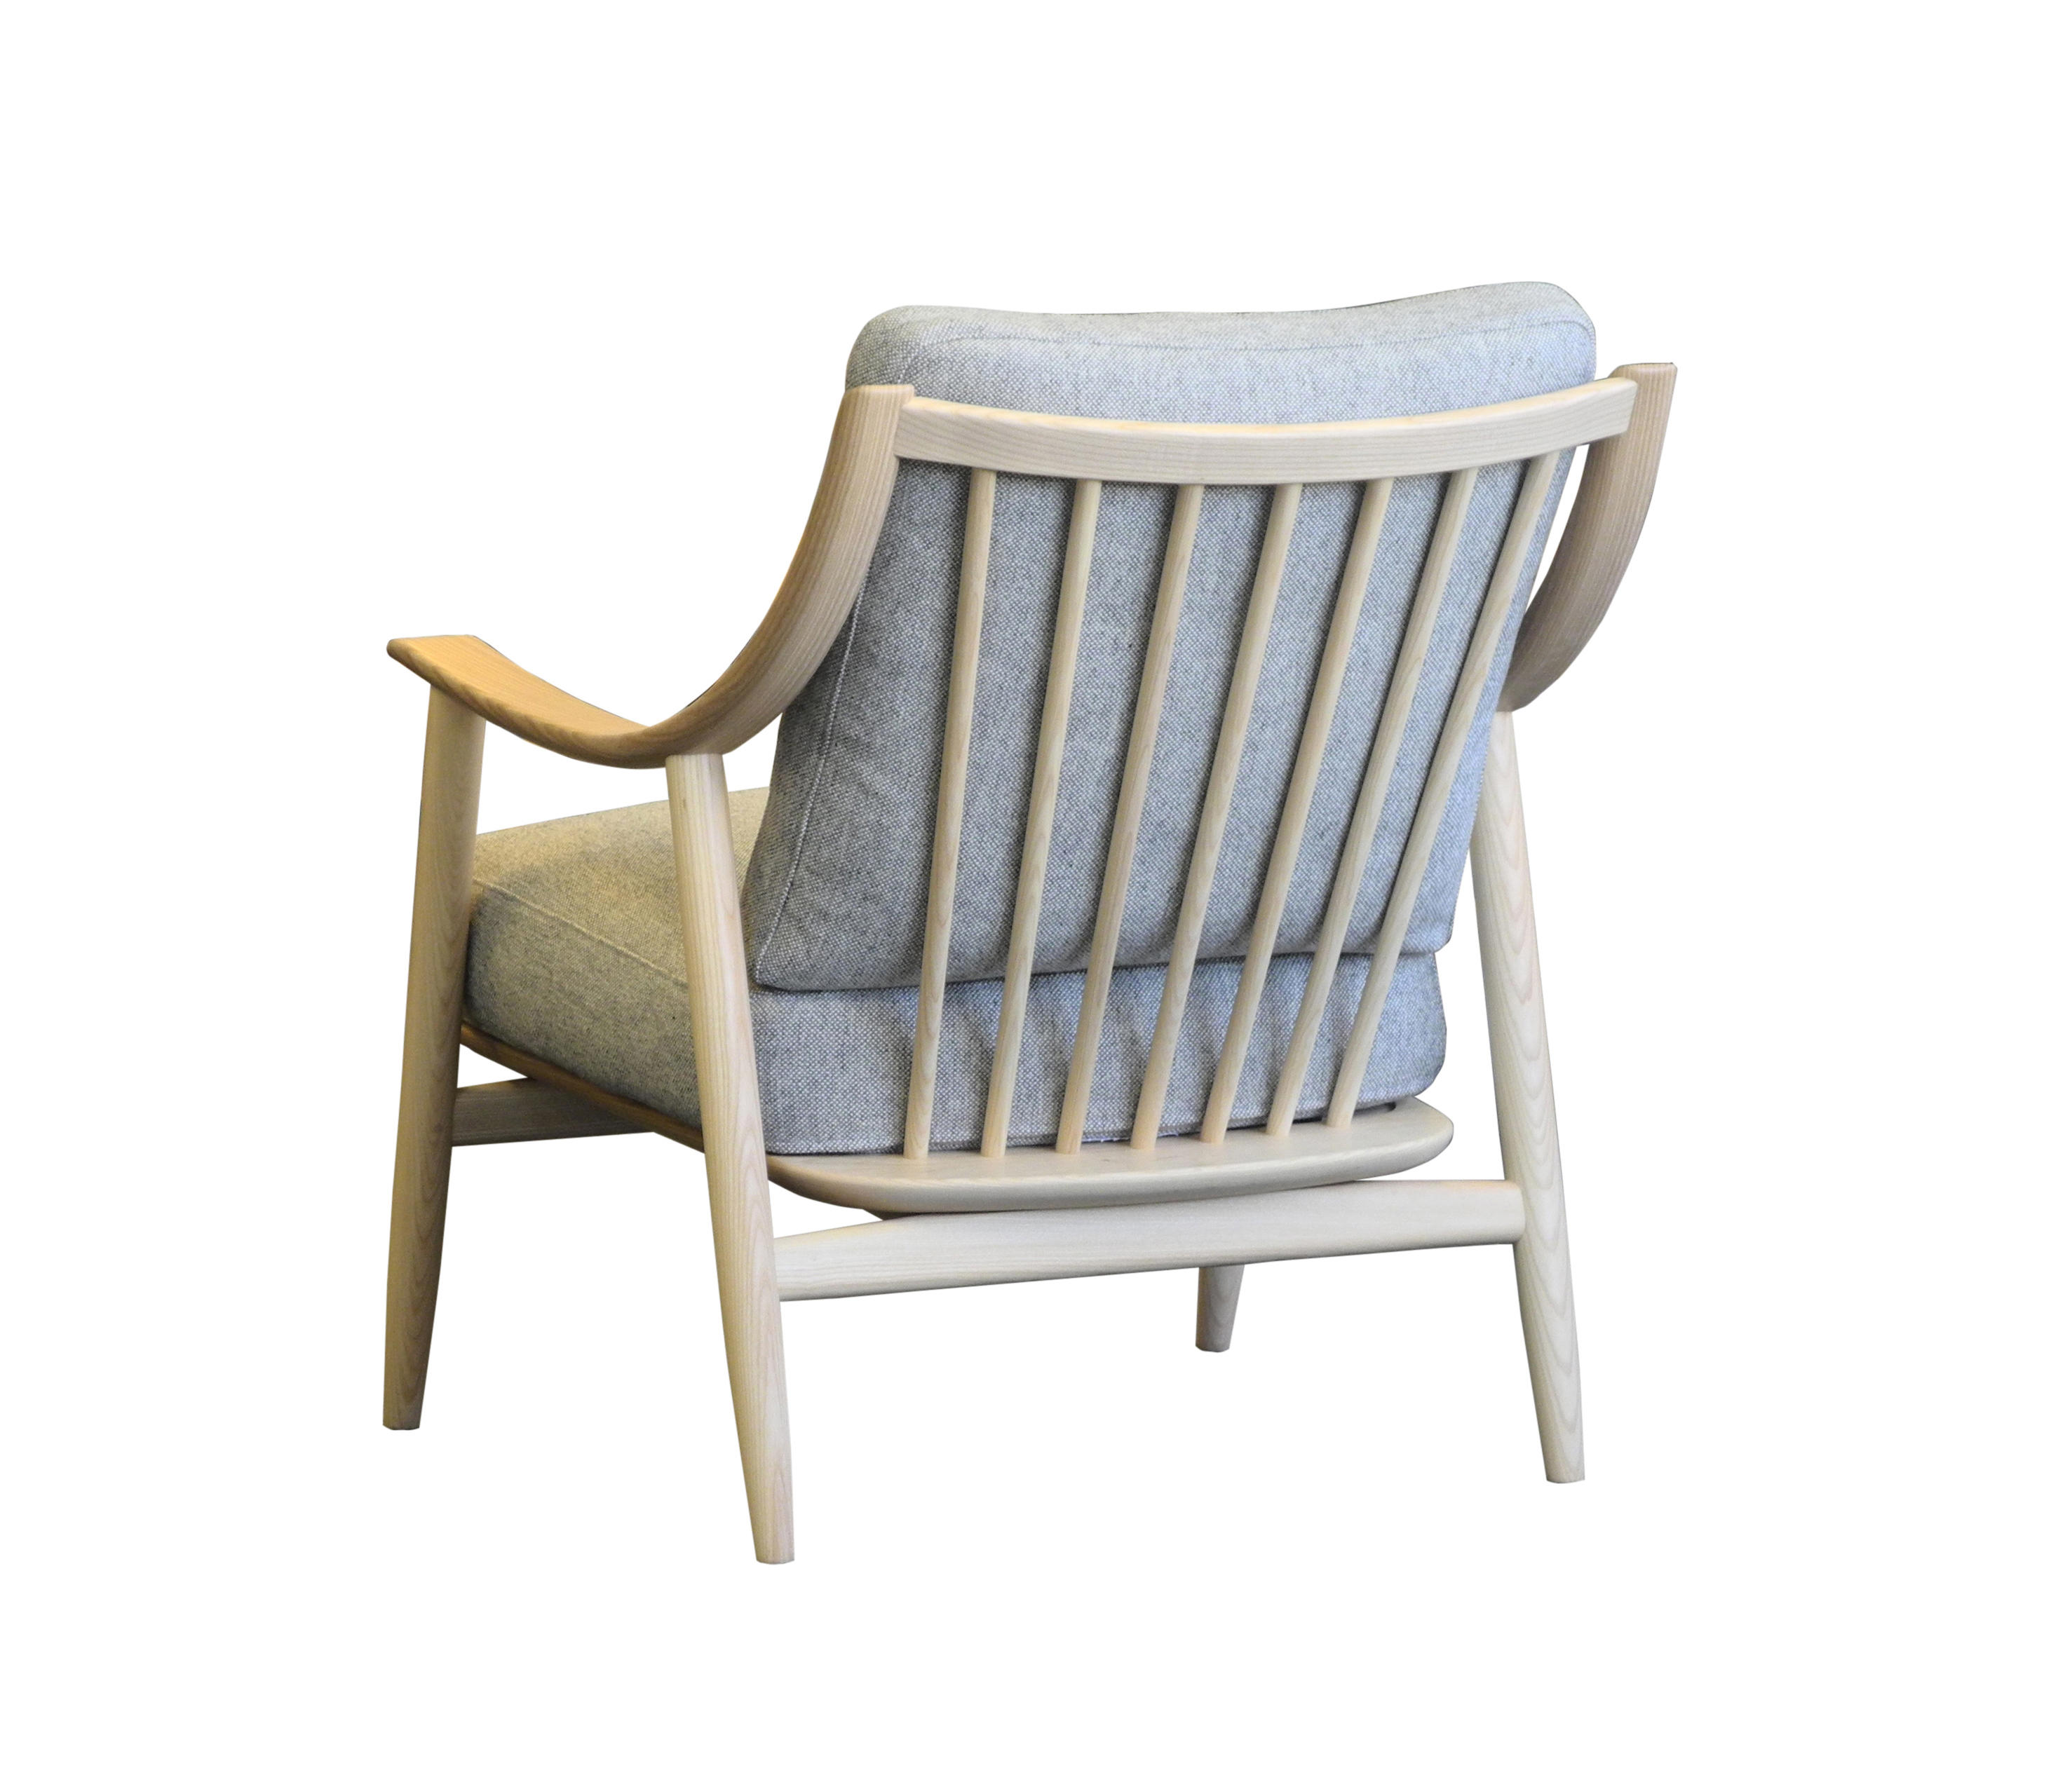 Marino   chair by Ercol   ArmchairsMARINO   CHAIR   Armchairs from Ercol   Architonic. Ercol Easy Chairs For Sale. Home Design Ideas